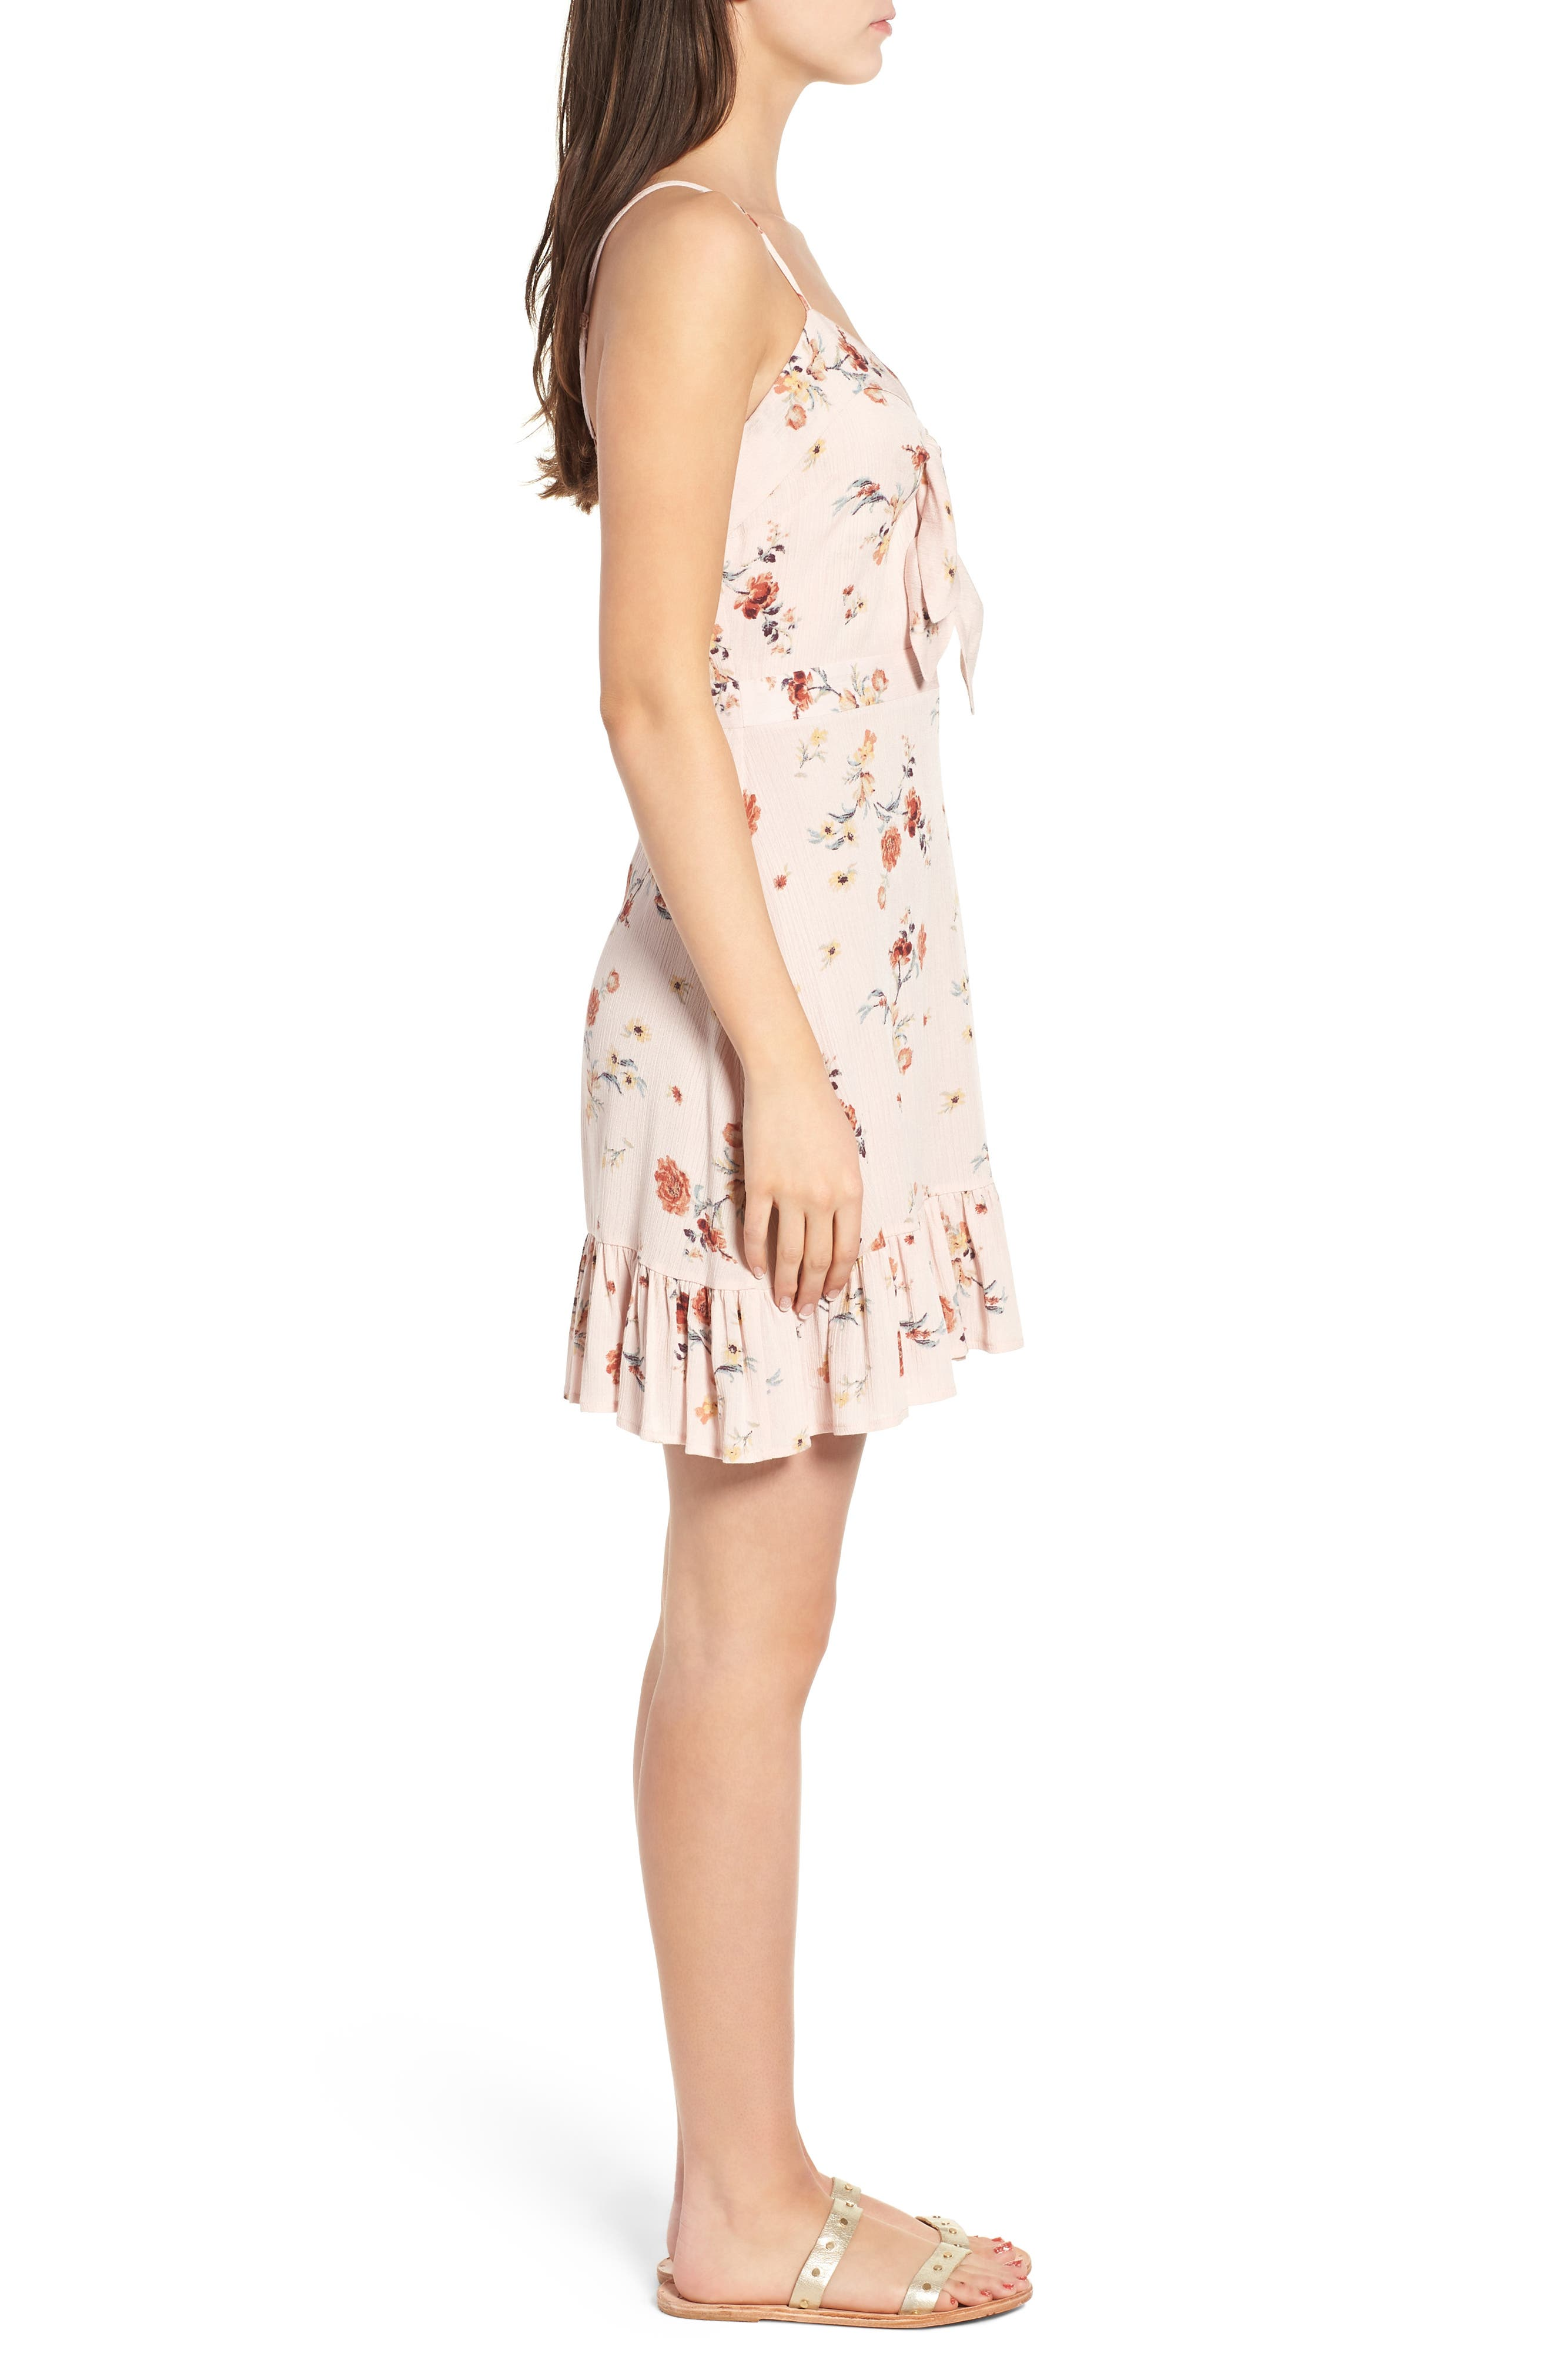 LOST + WANDER,                             Rosa Floral Tie Front Minidress,                             Alternate thumbnail 3, color,                             650